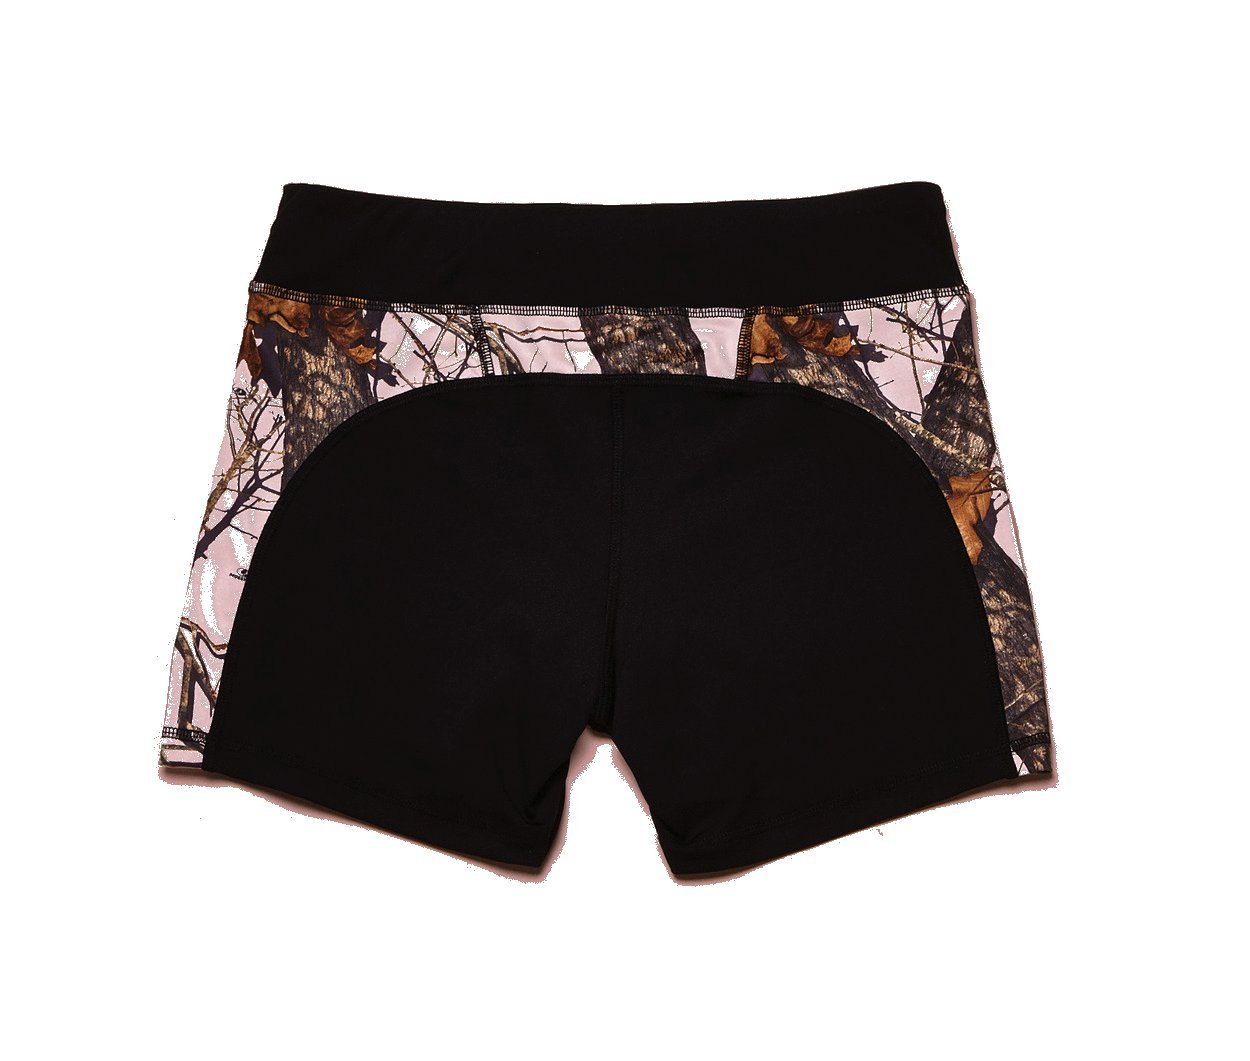 Wilderness Dreams Active Wear Shorts Black with Mossy Oak Pink Size Medium by Wilderness Dreams